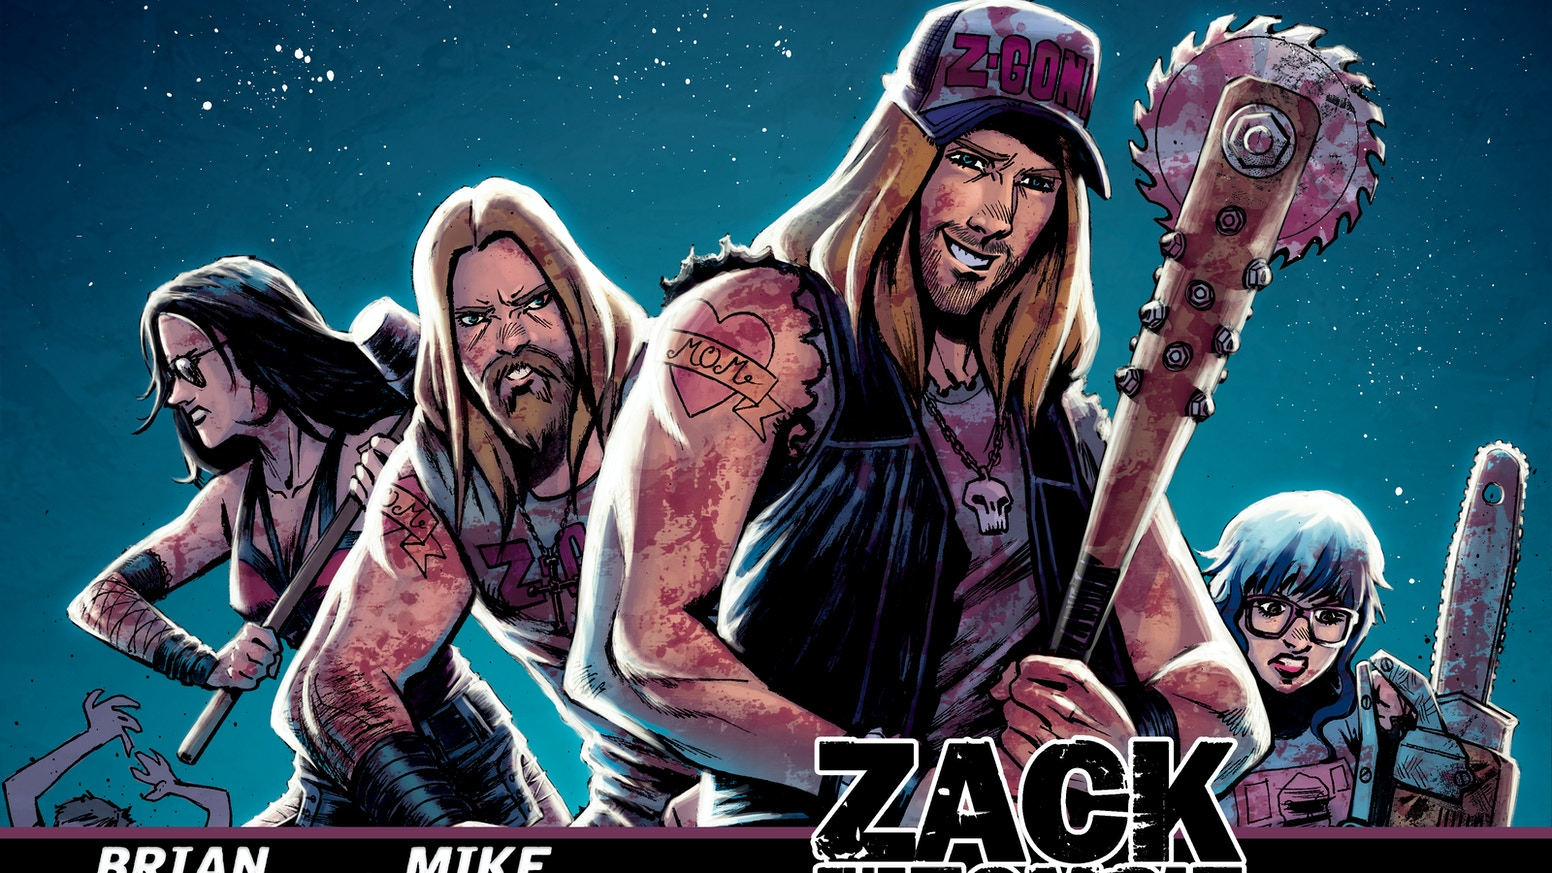 Zack the Zombie Exterminator is now available for purchase at Lady Death Store!